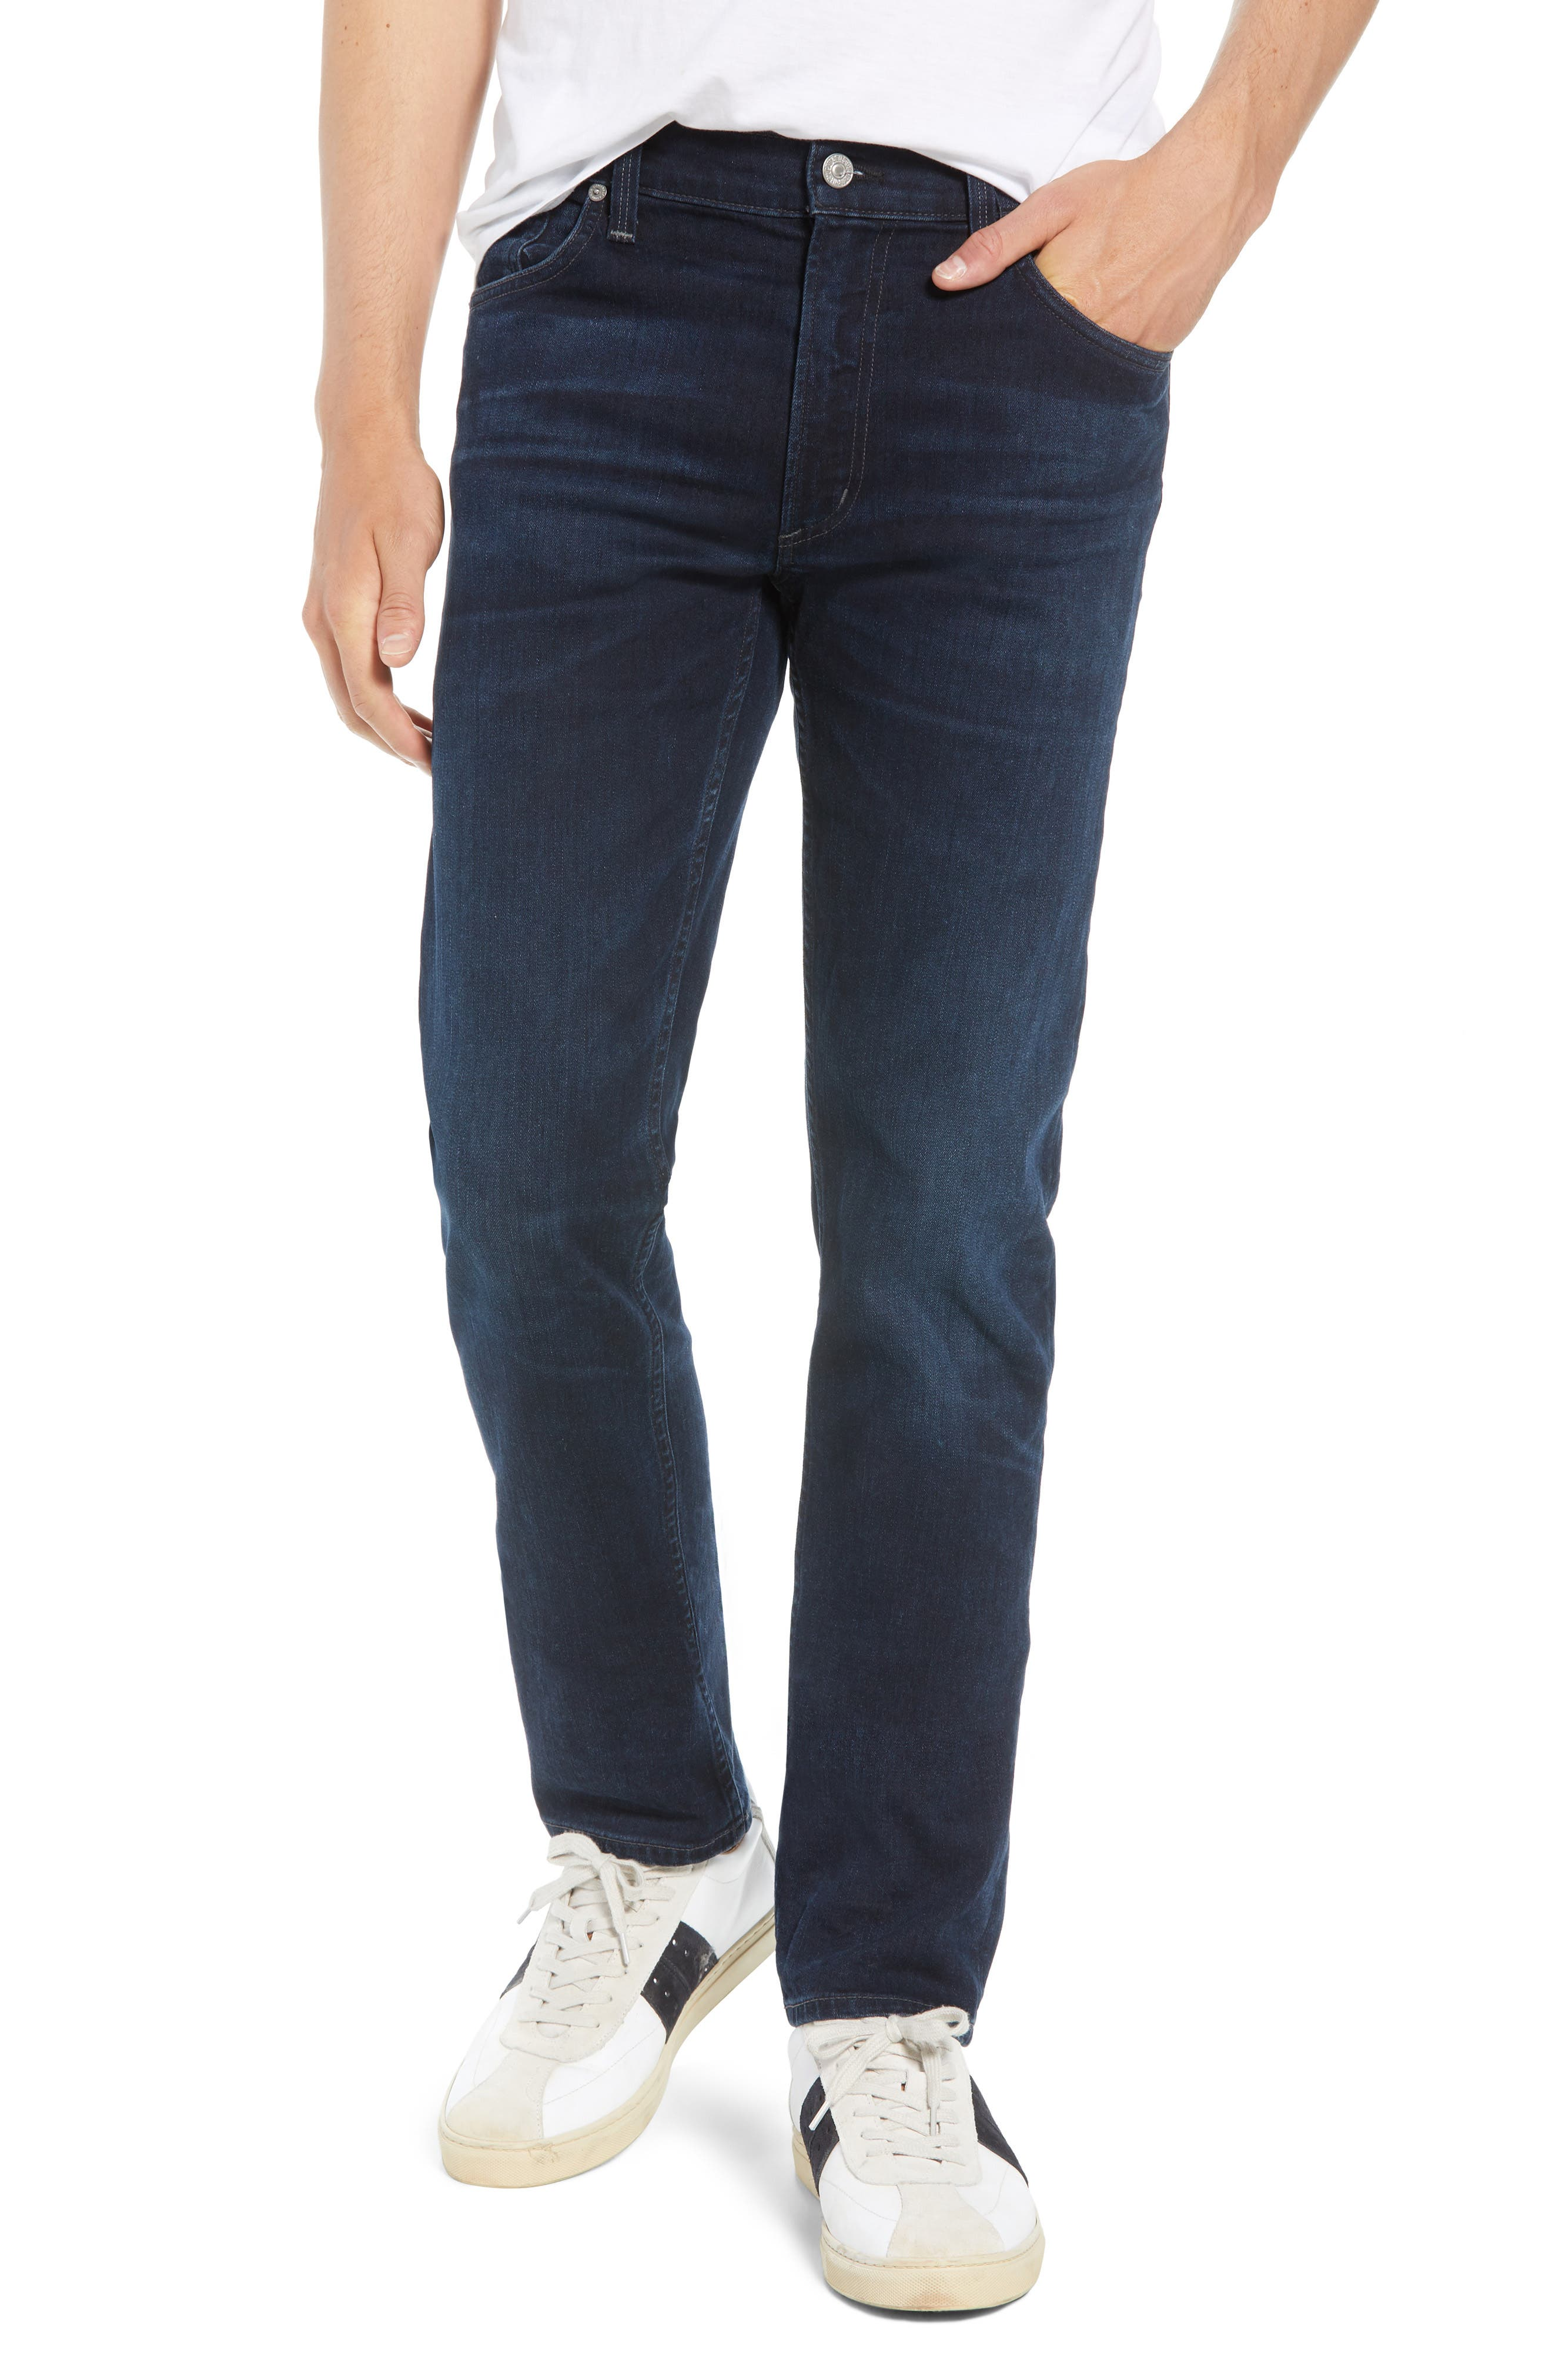 Bowery Slim Fit Jeans,                             Main thumbnail 1, color,                             407